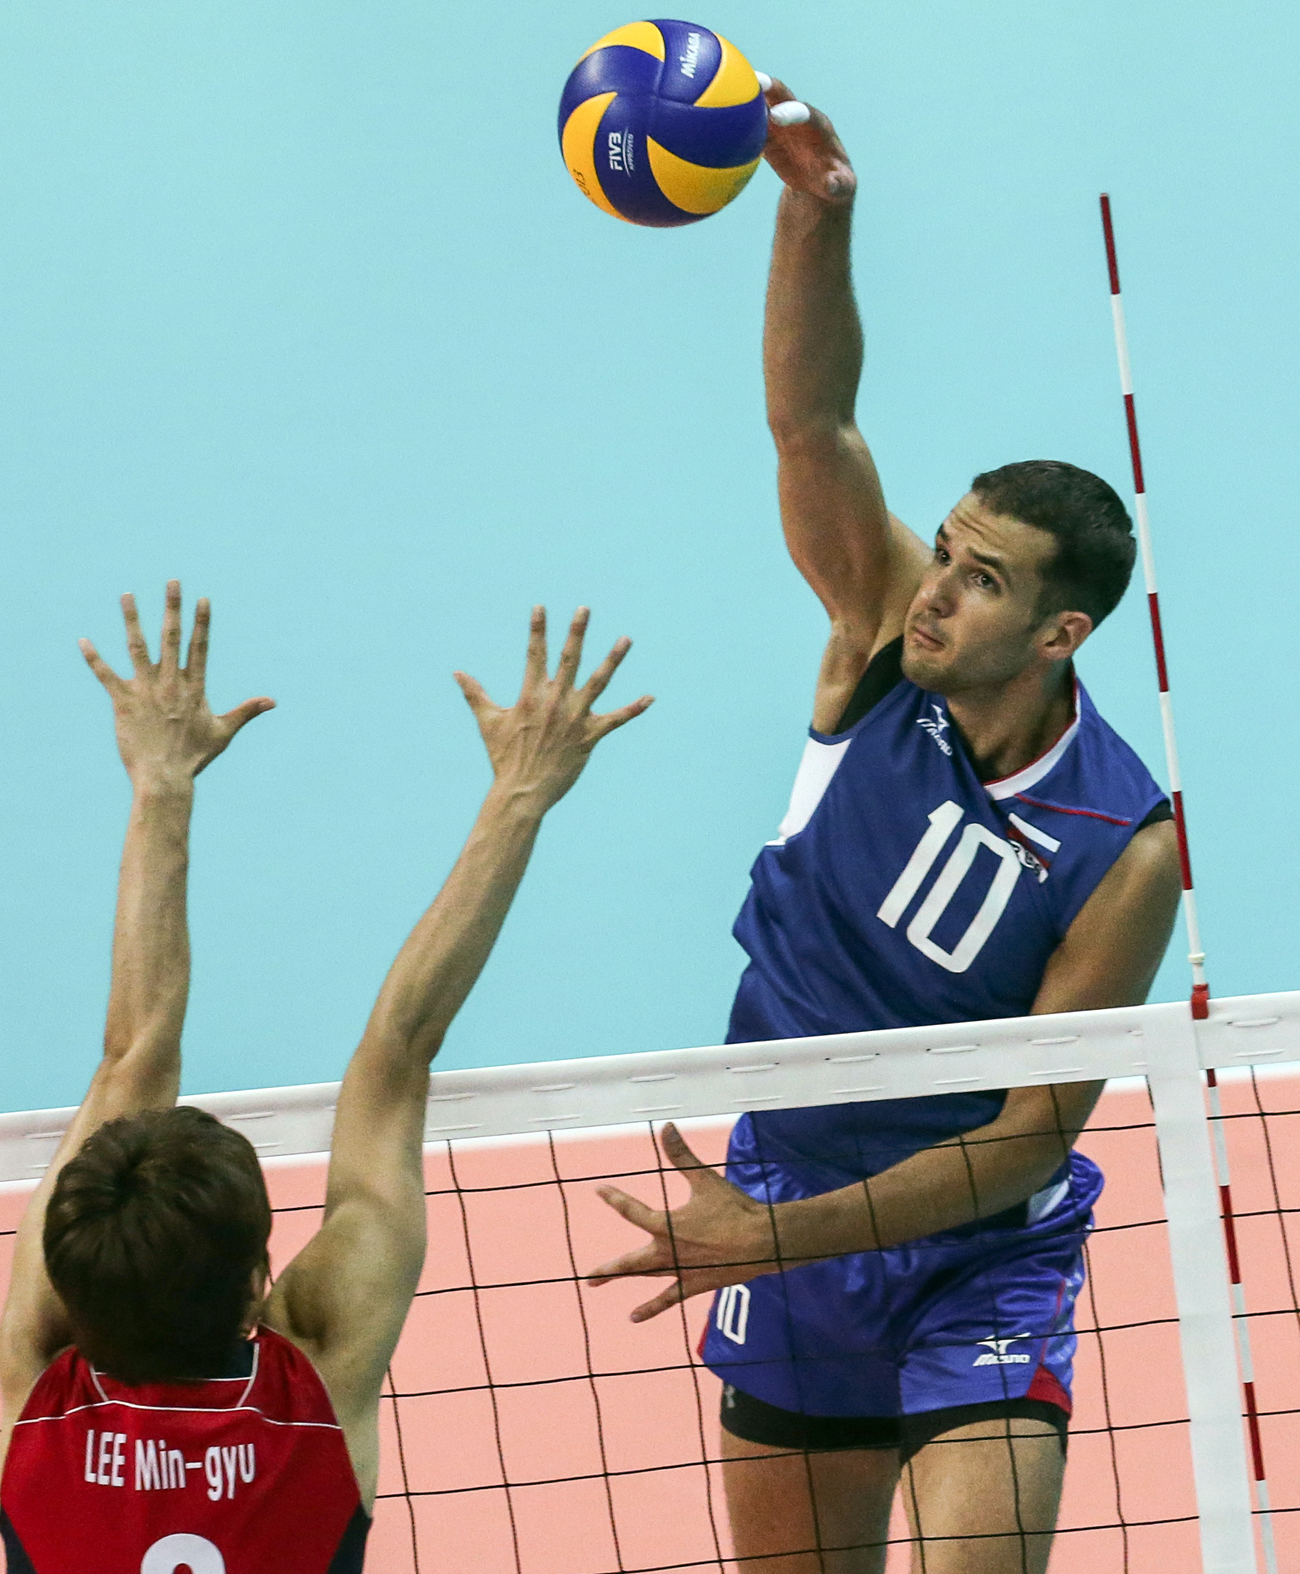 Photo: Alexander Markin (blue) of Russia in the first match of the group stage of the 27th Summer Universiade in 2013.